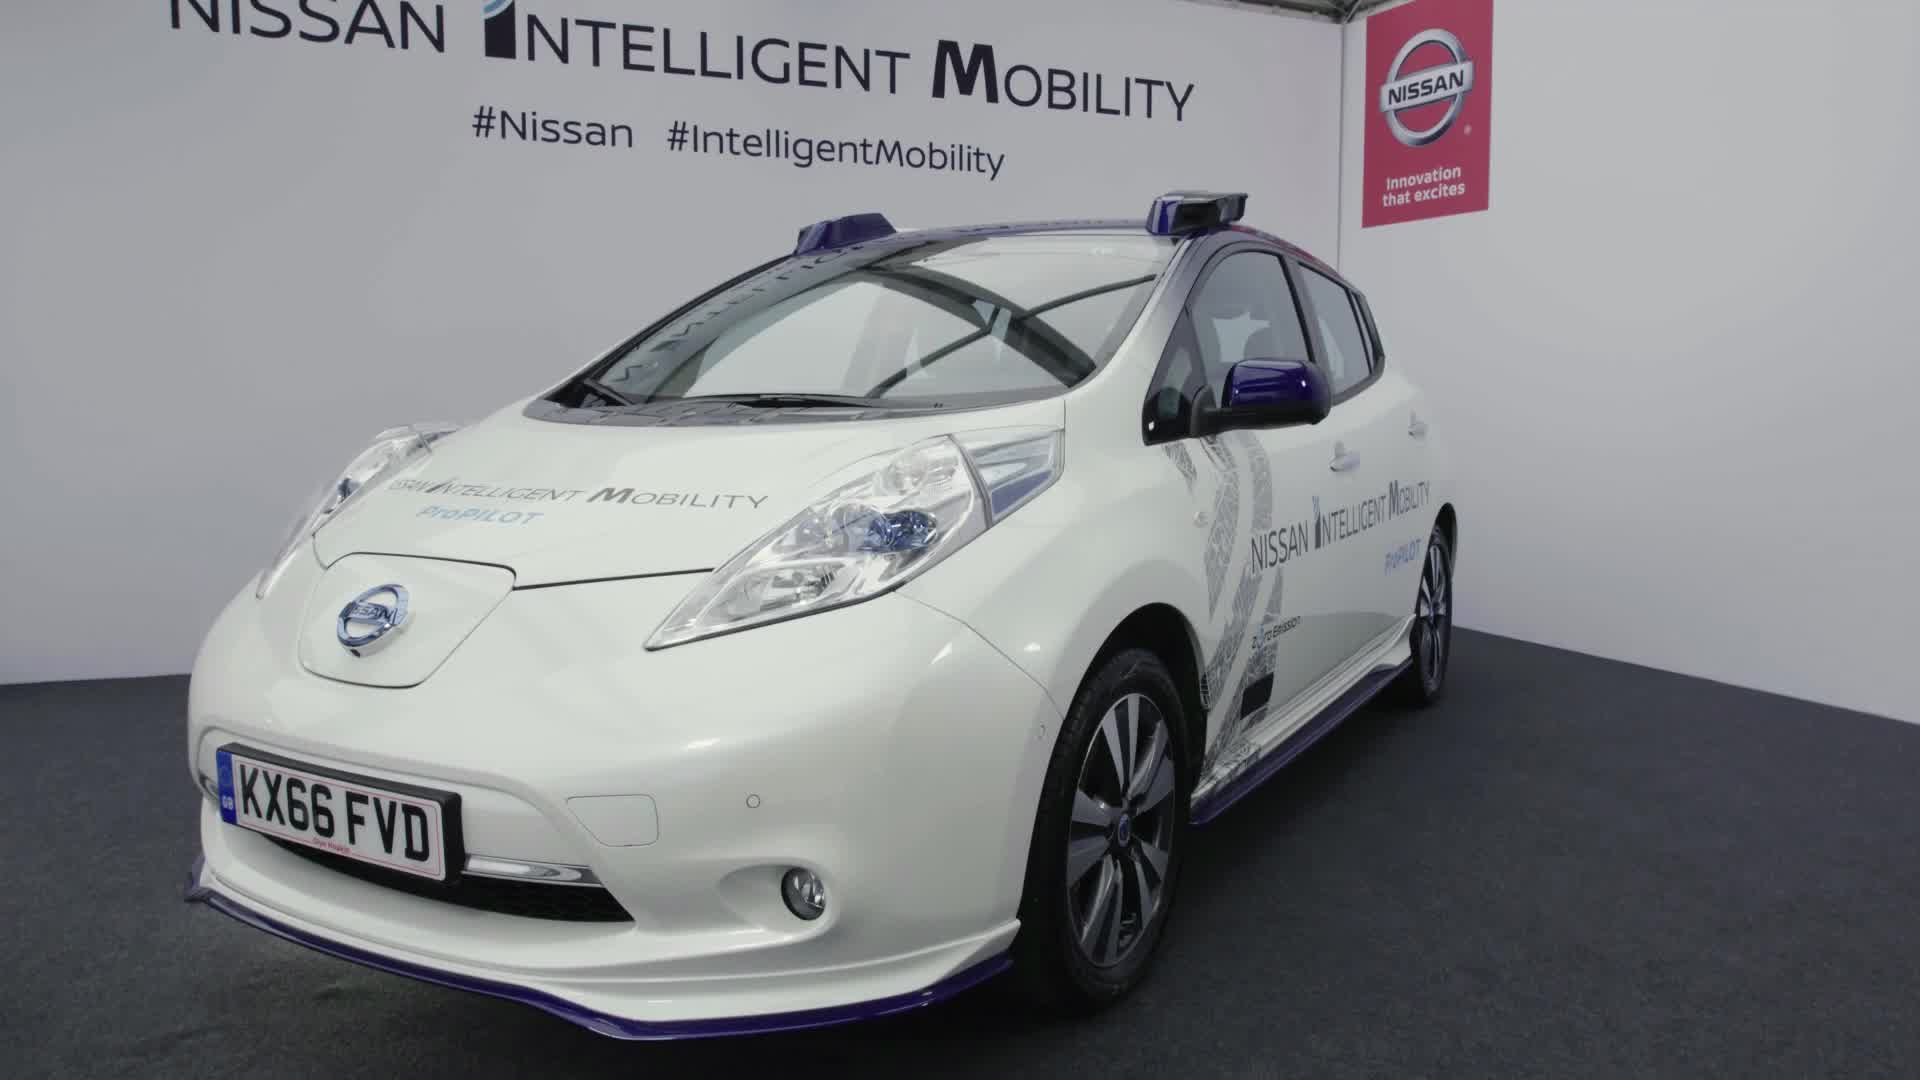 B-Roll: Nissan conducts on-road autonomous vehicle testing in Europe